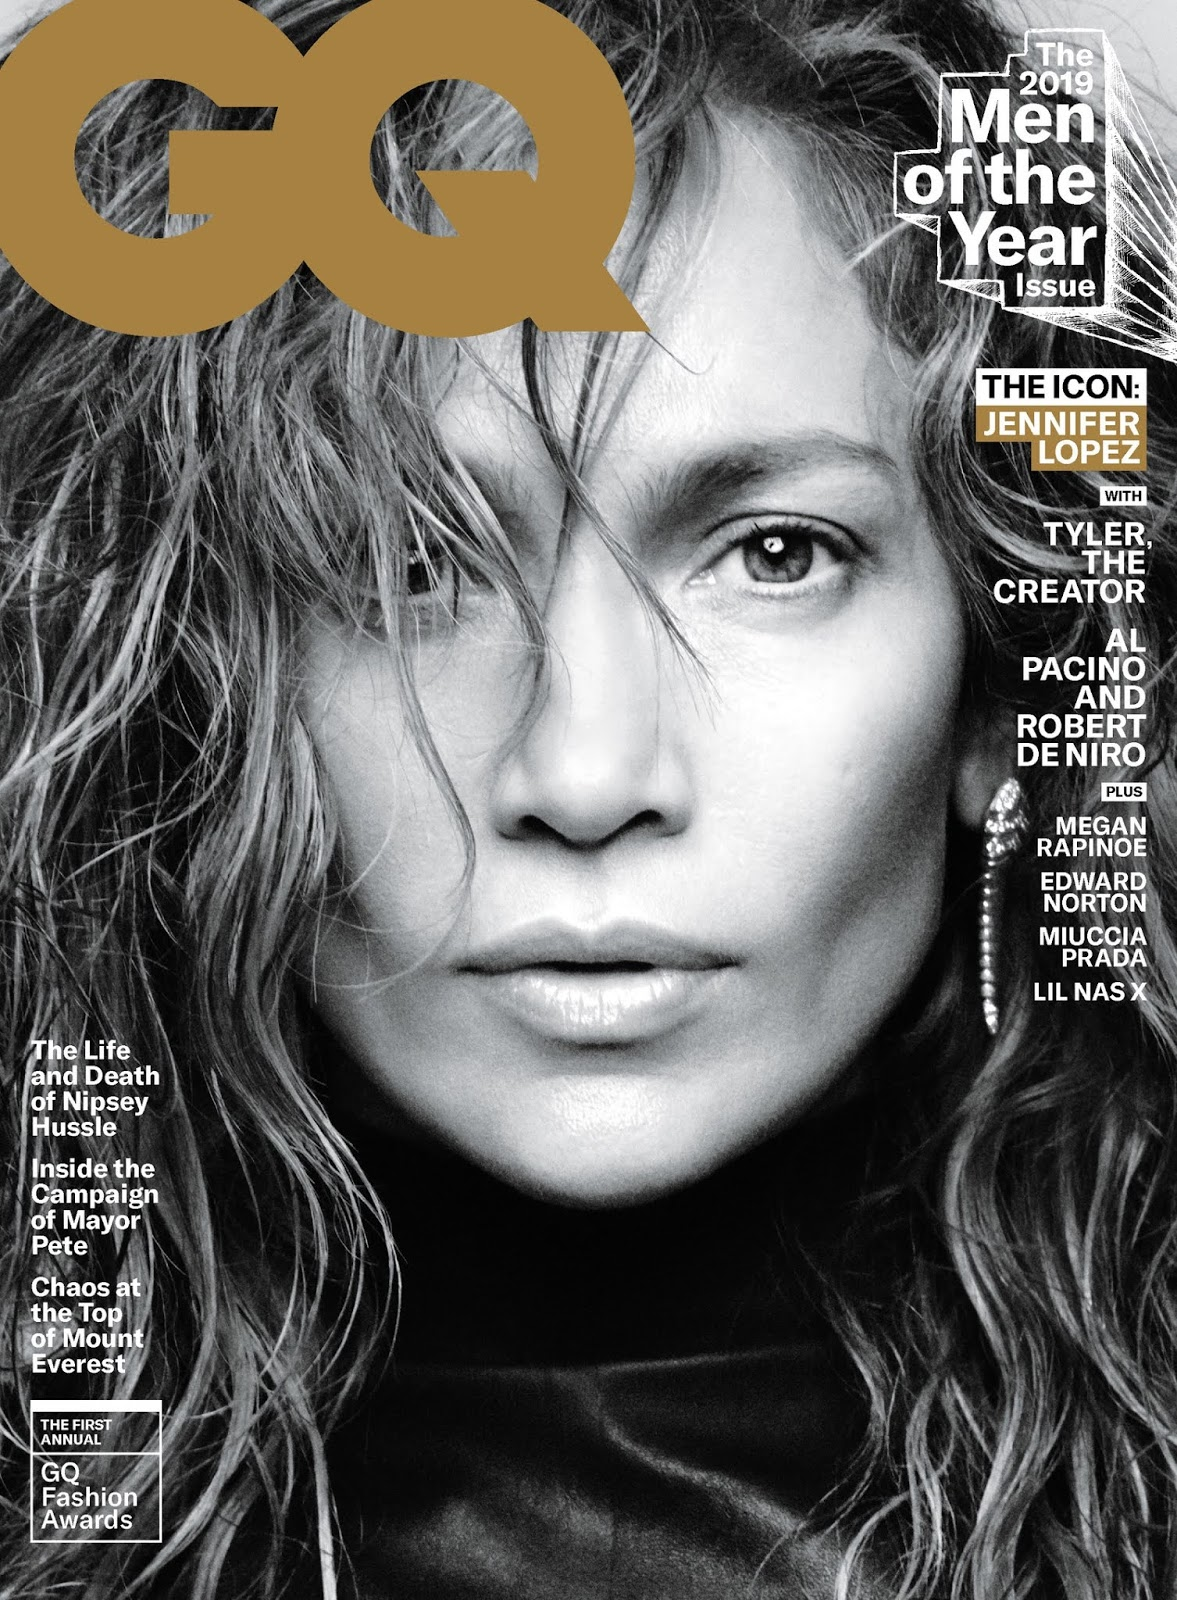 Jennifer Lopez is GQ's Icon of the Year 2019